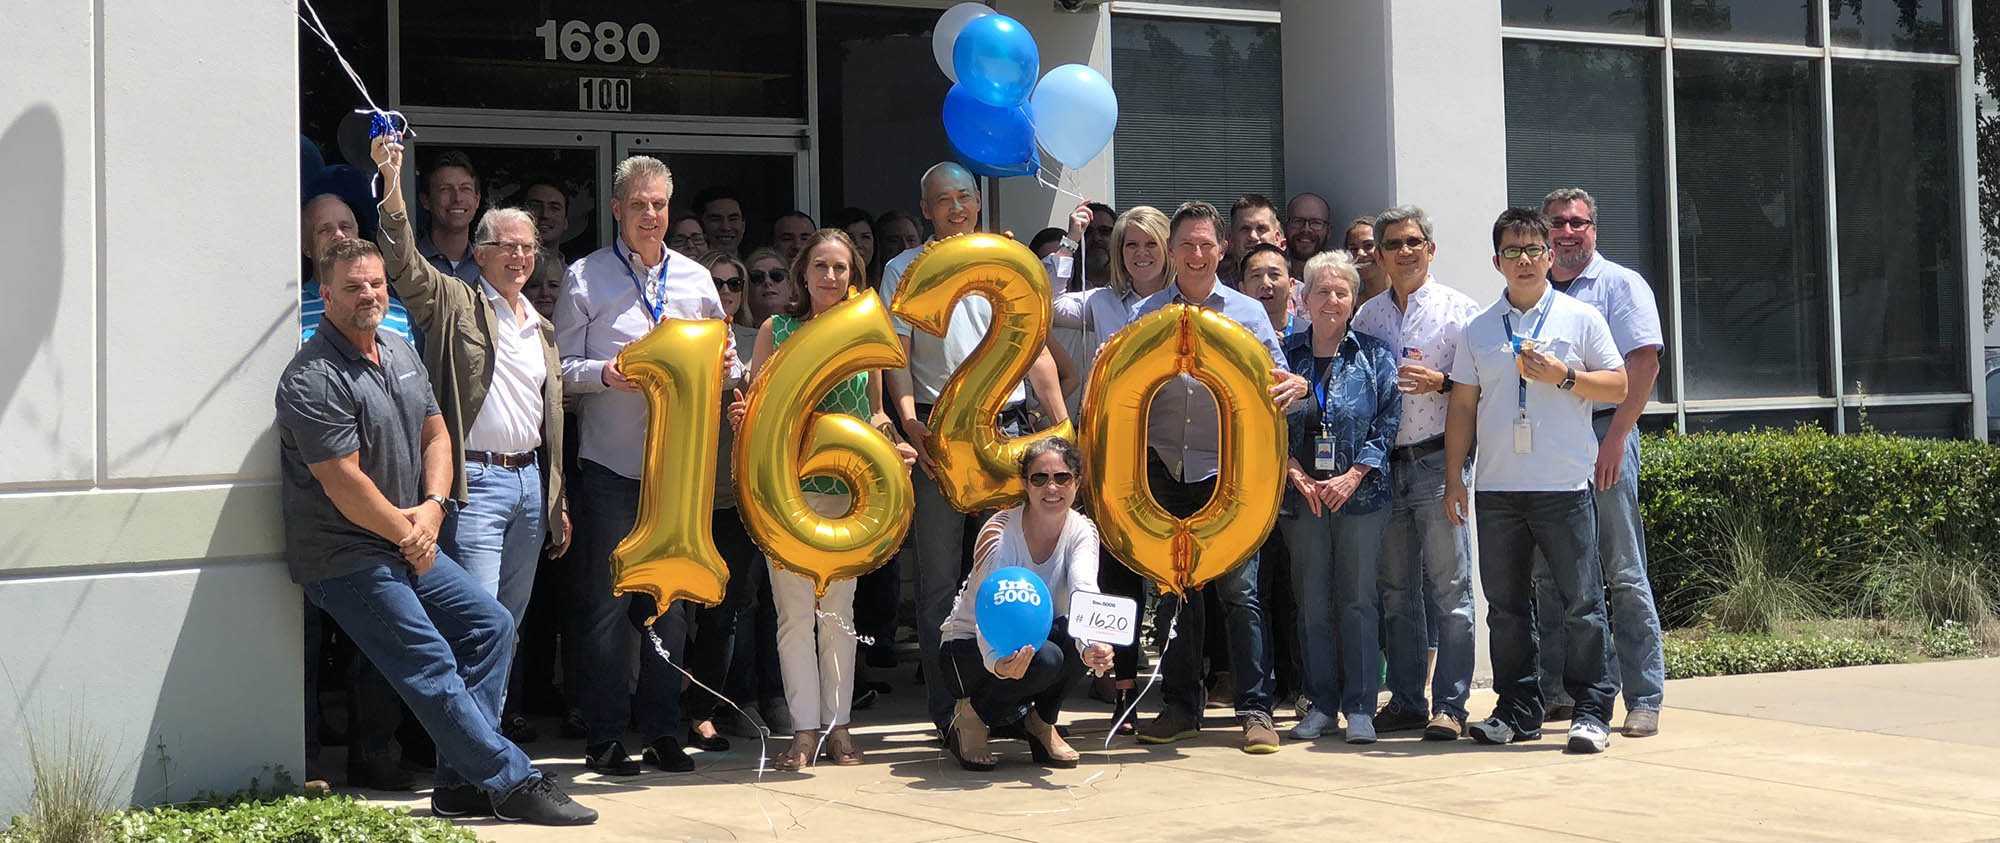 Group picture of Enseo employees holding golden balloon numbers that read 1620 for the Inc 5000